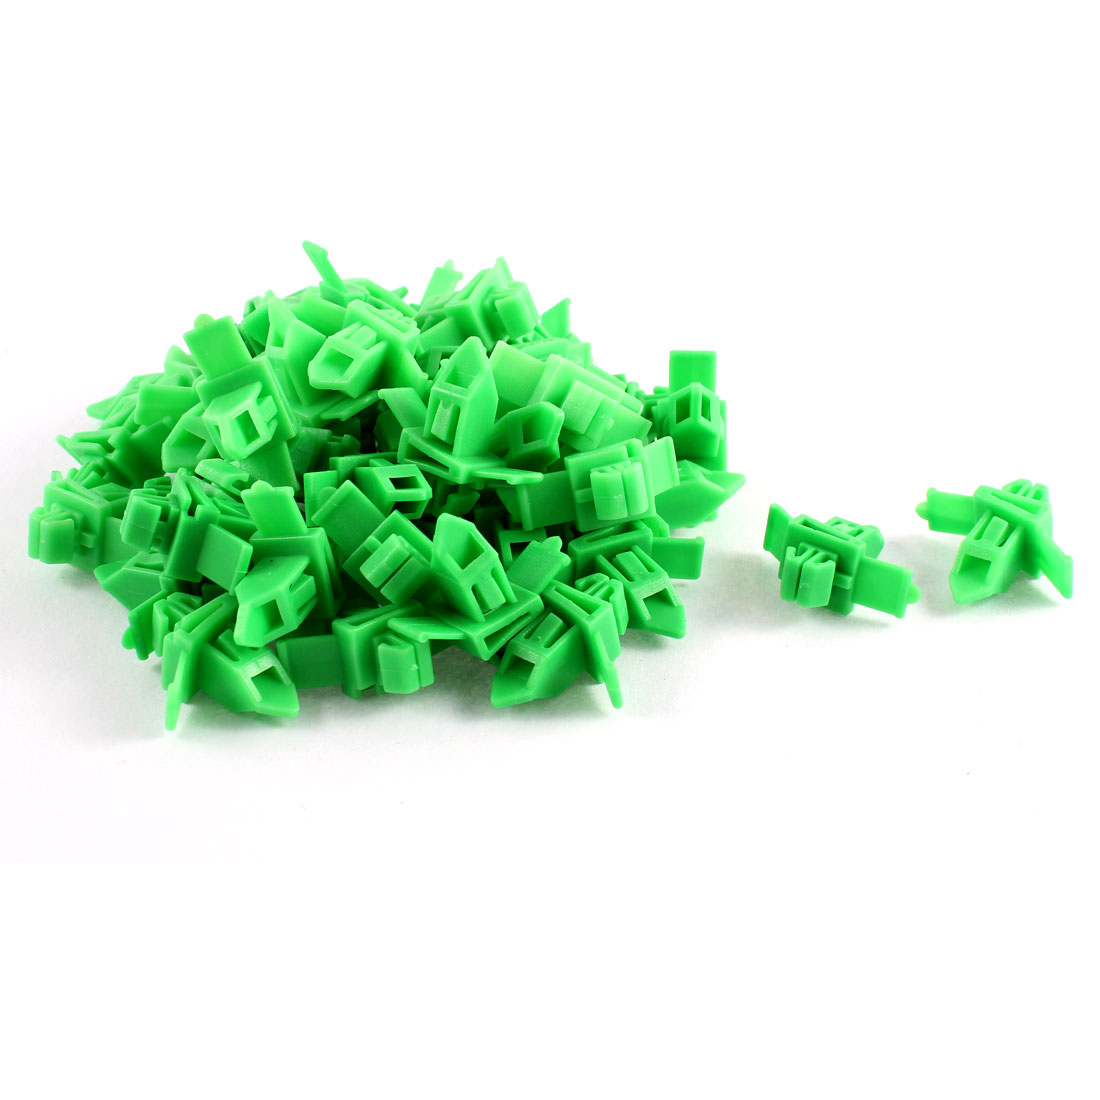 50 Pcs Green Plastic Rivets Fastener Fender Retainer 9.5mm x 7mm Fit Hole for Toyota